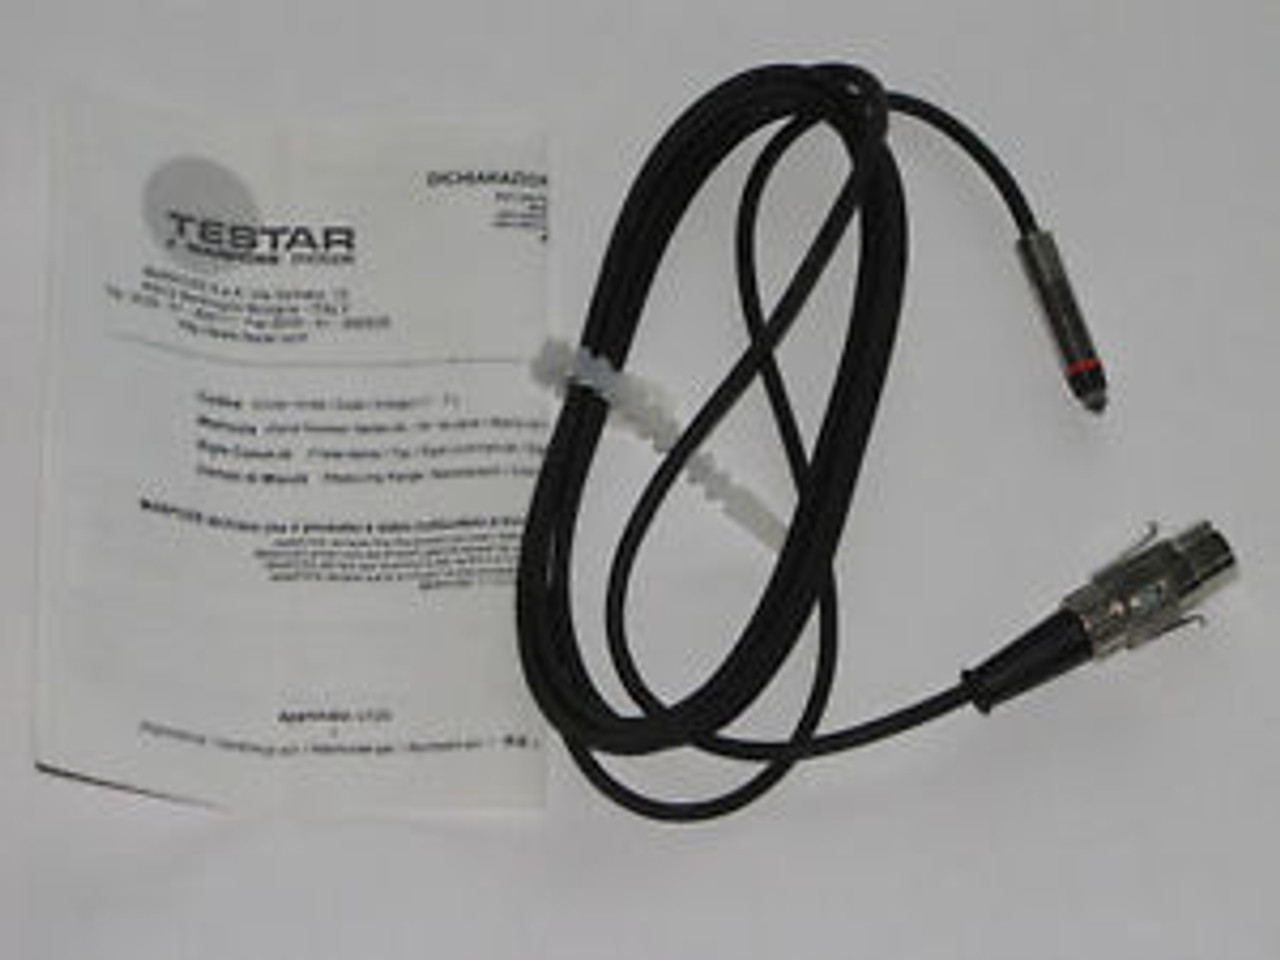 Box Marposs 3441558000 Testar Pencil Probe New in OPEN